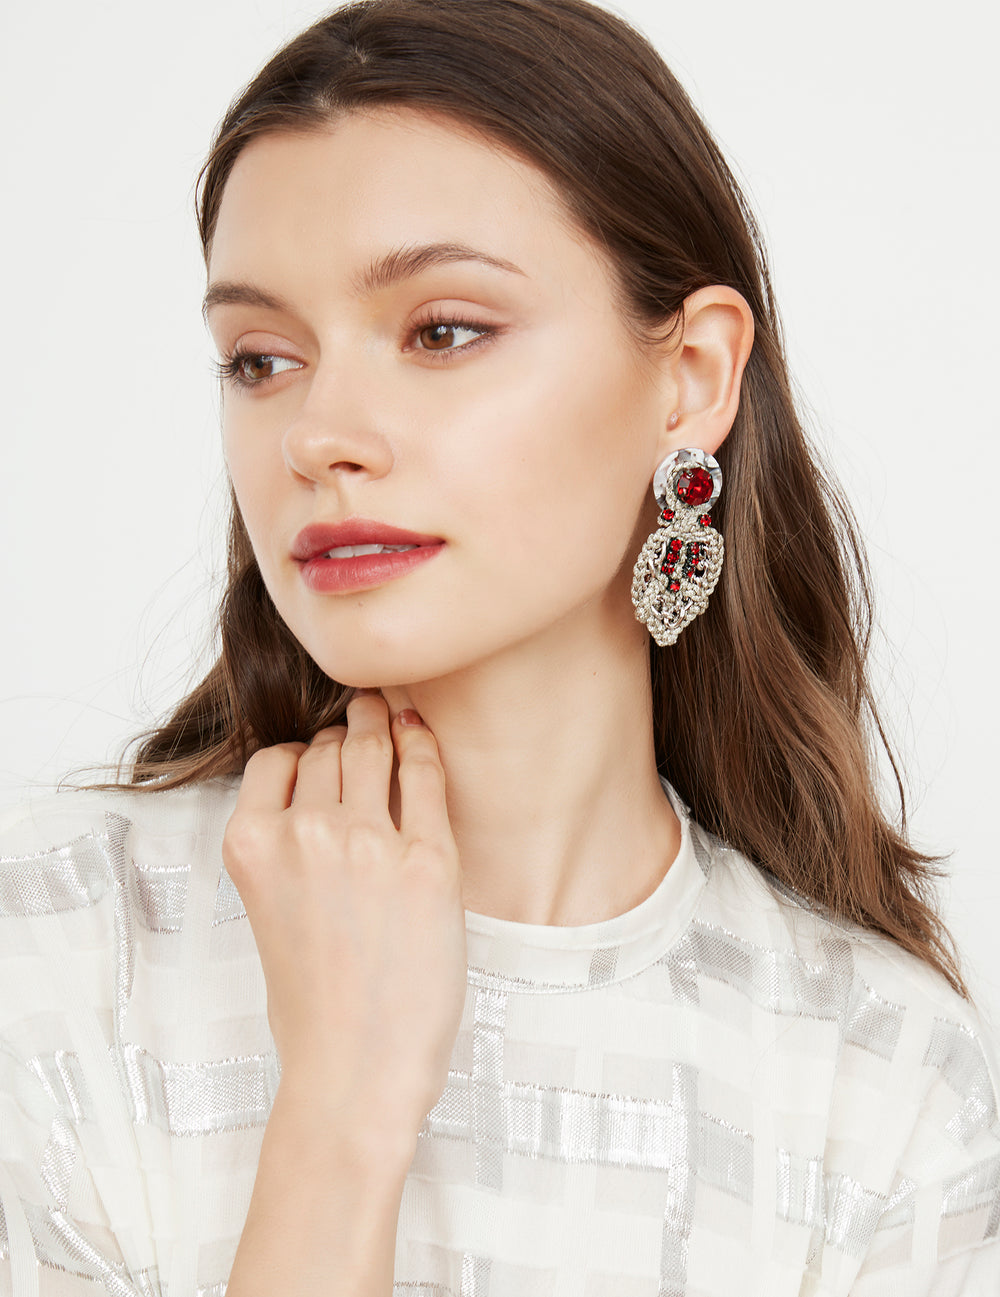 Awasa earrings (stud)